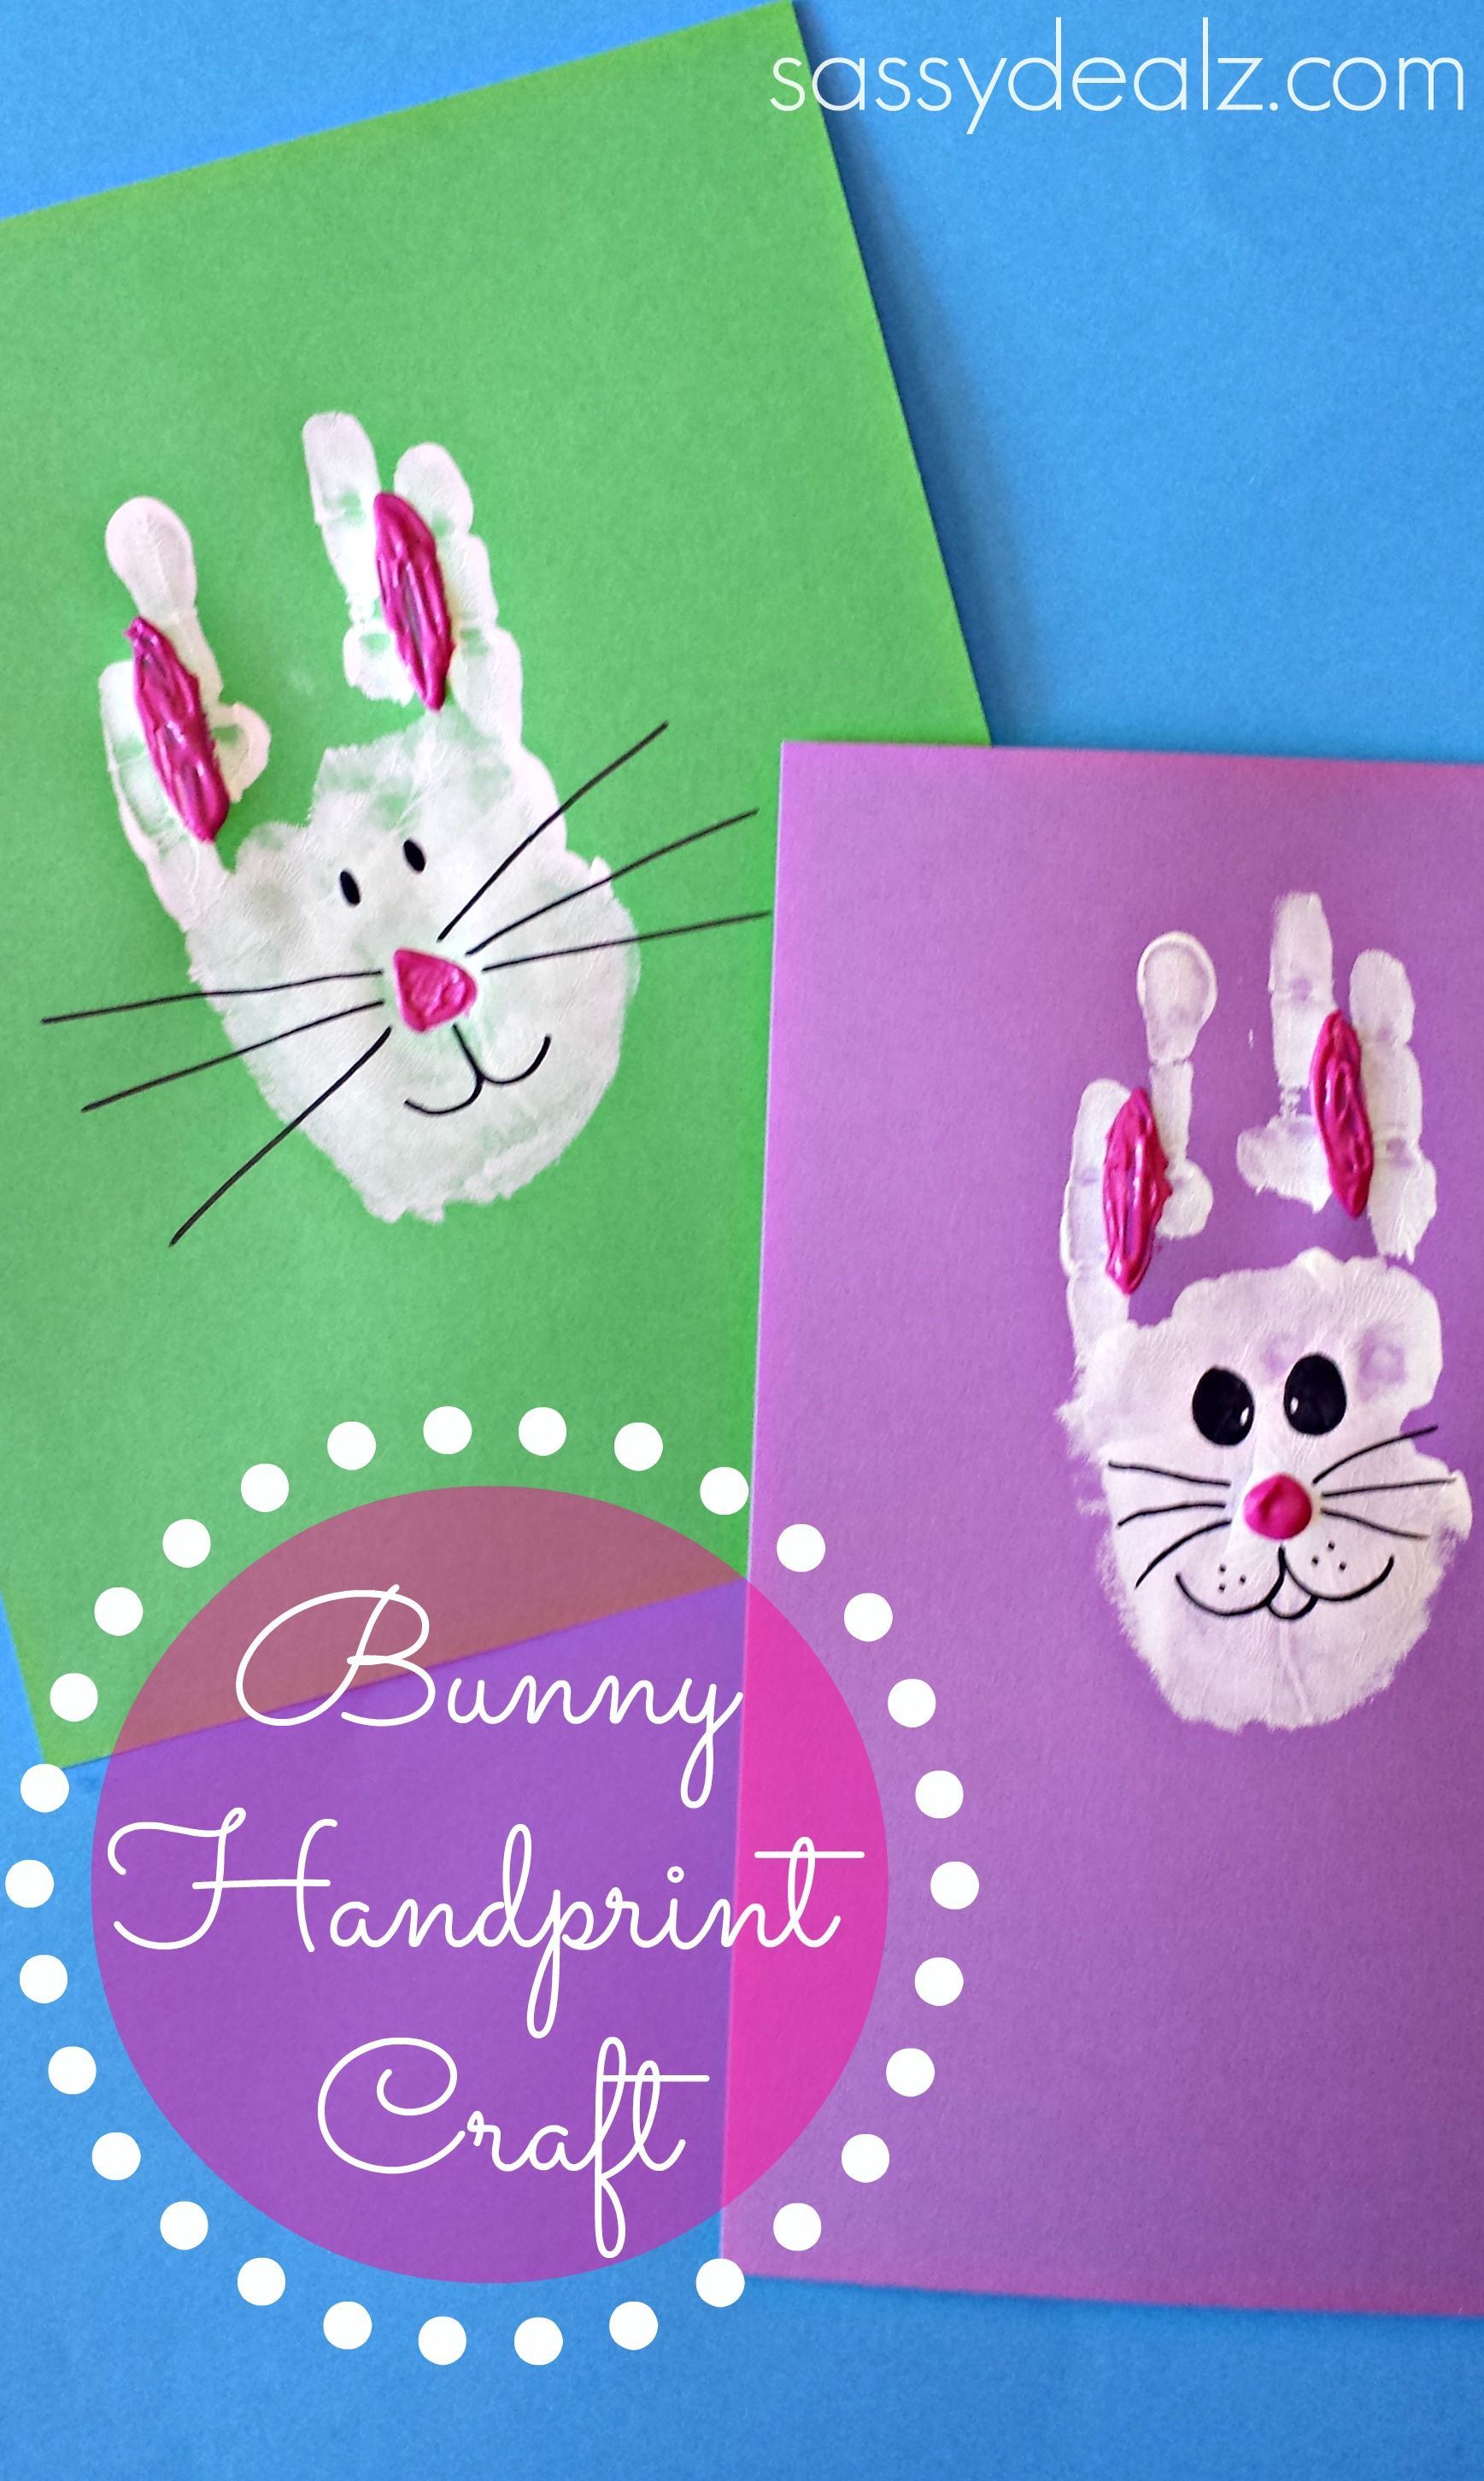 Easy easter bunny crafts - Bunny Handprint Craft